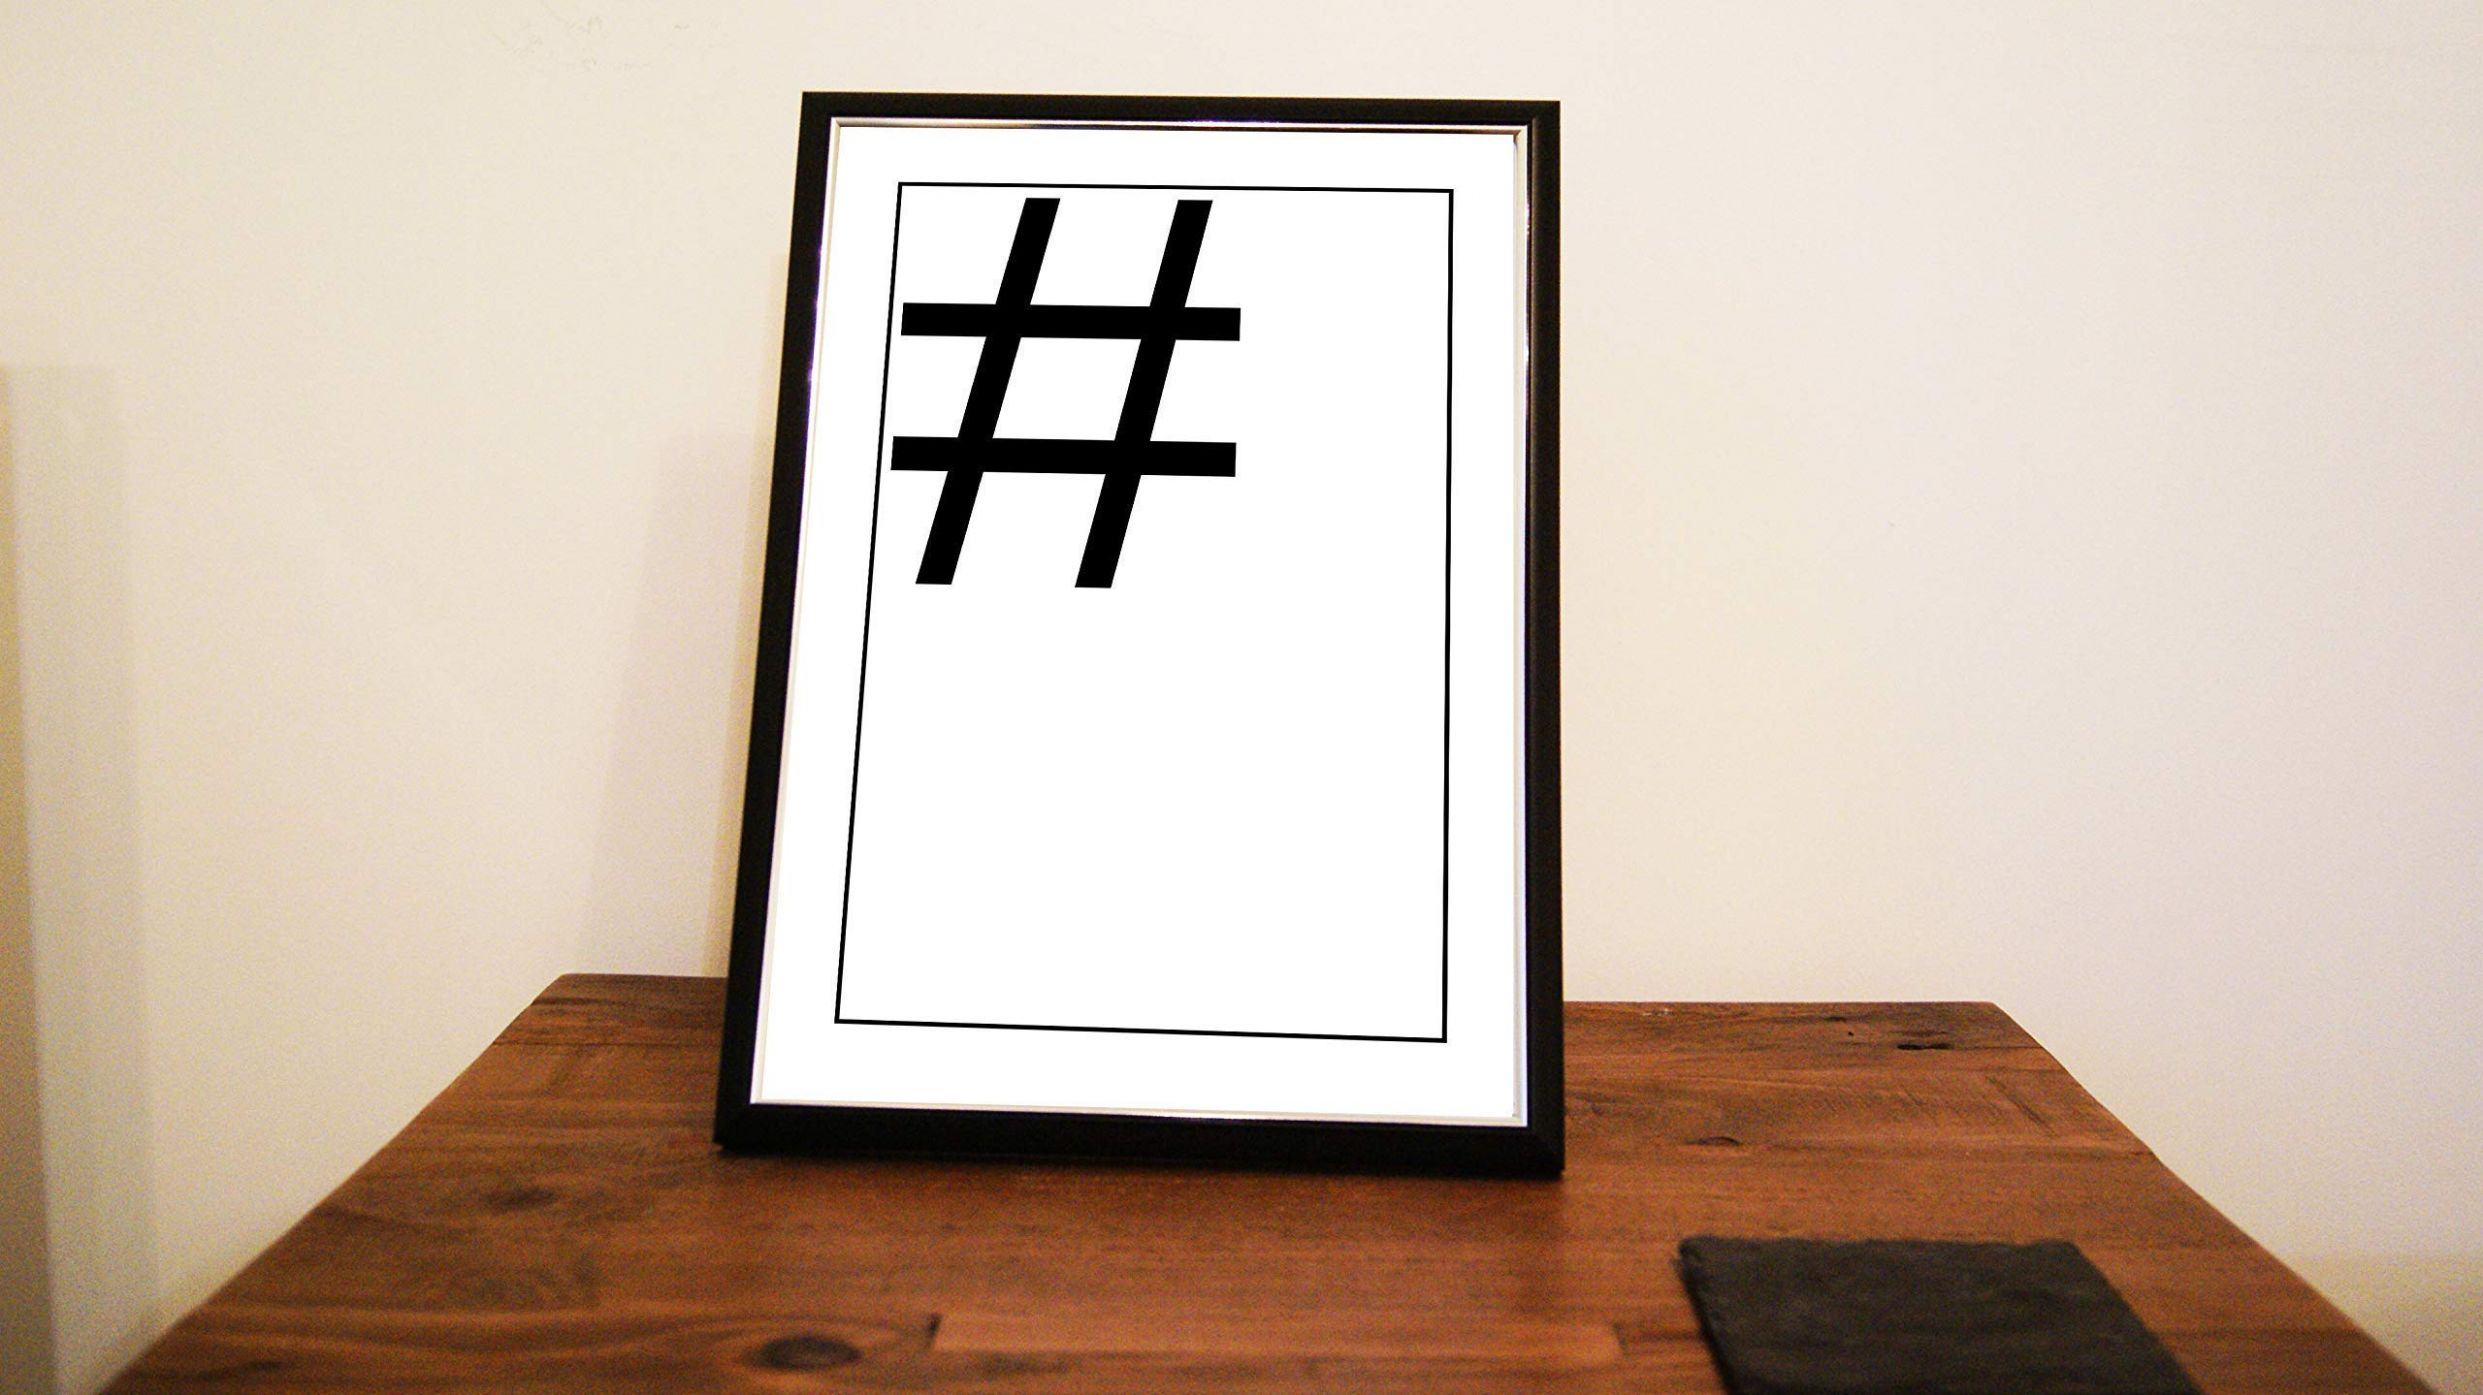 A12/A12 Fashion Print - Hashtag Teen Bedroom Poster - Salon Picture- Home  Decor - UNFRAMED - home decor hashtags